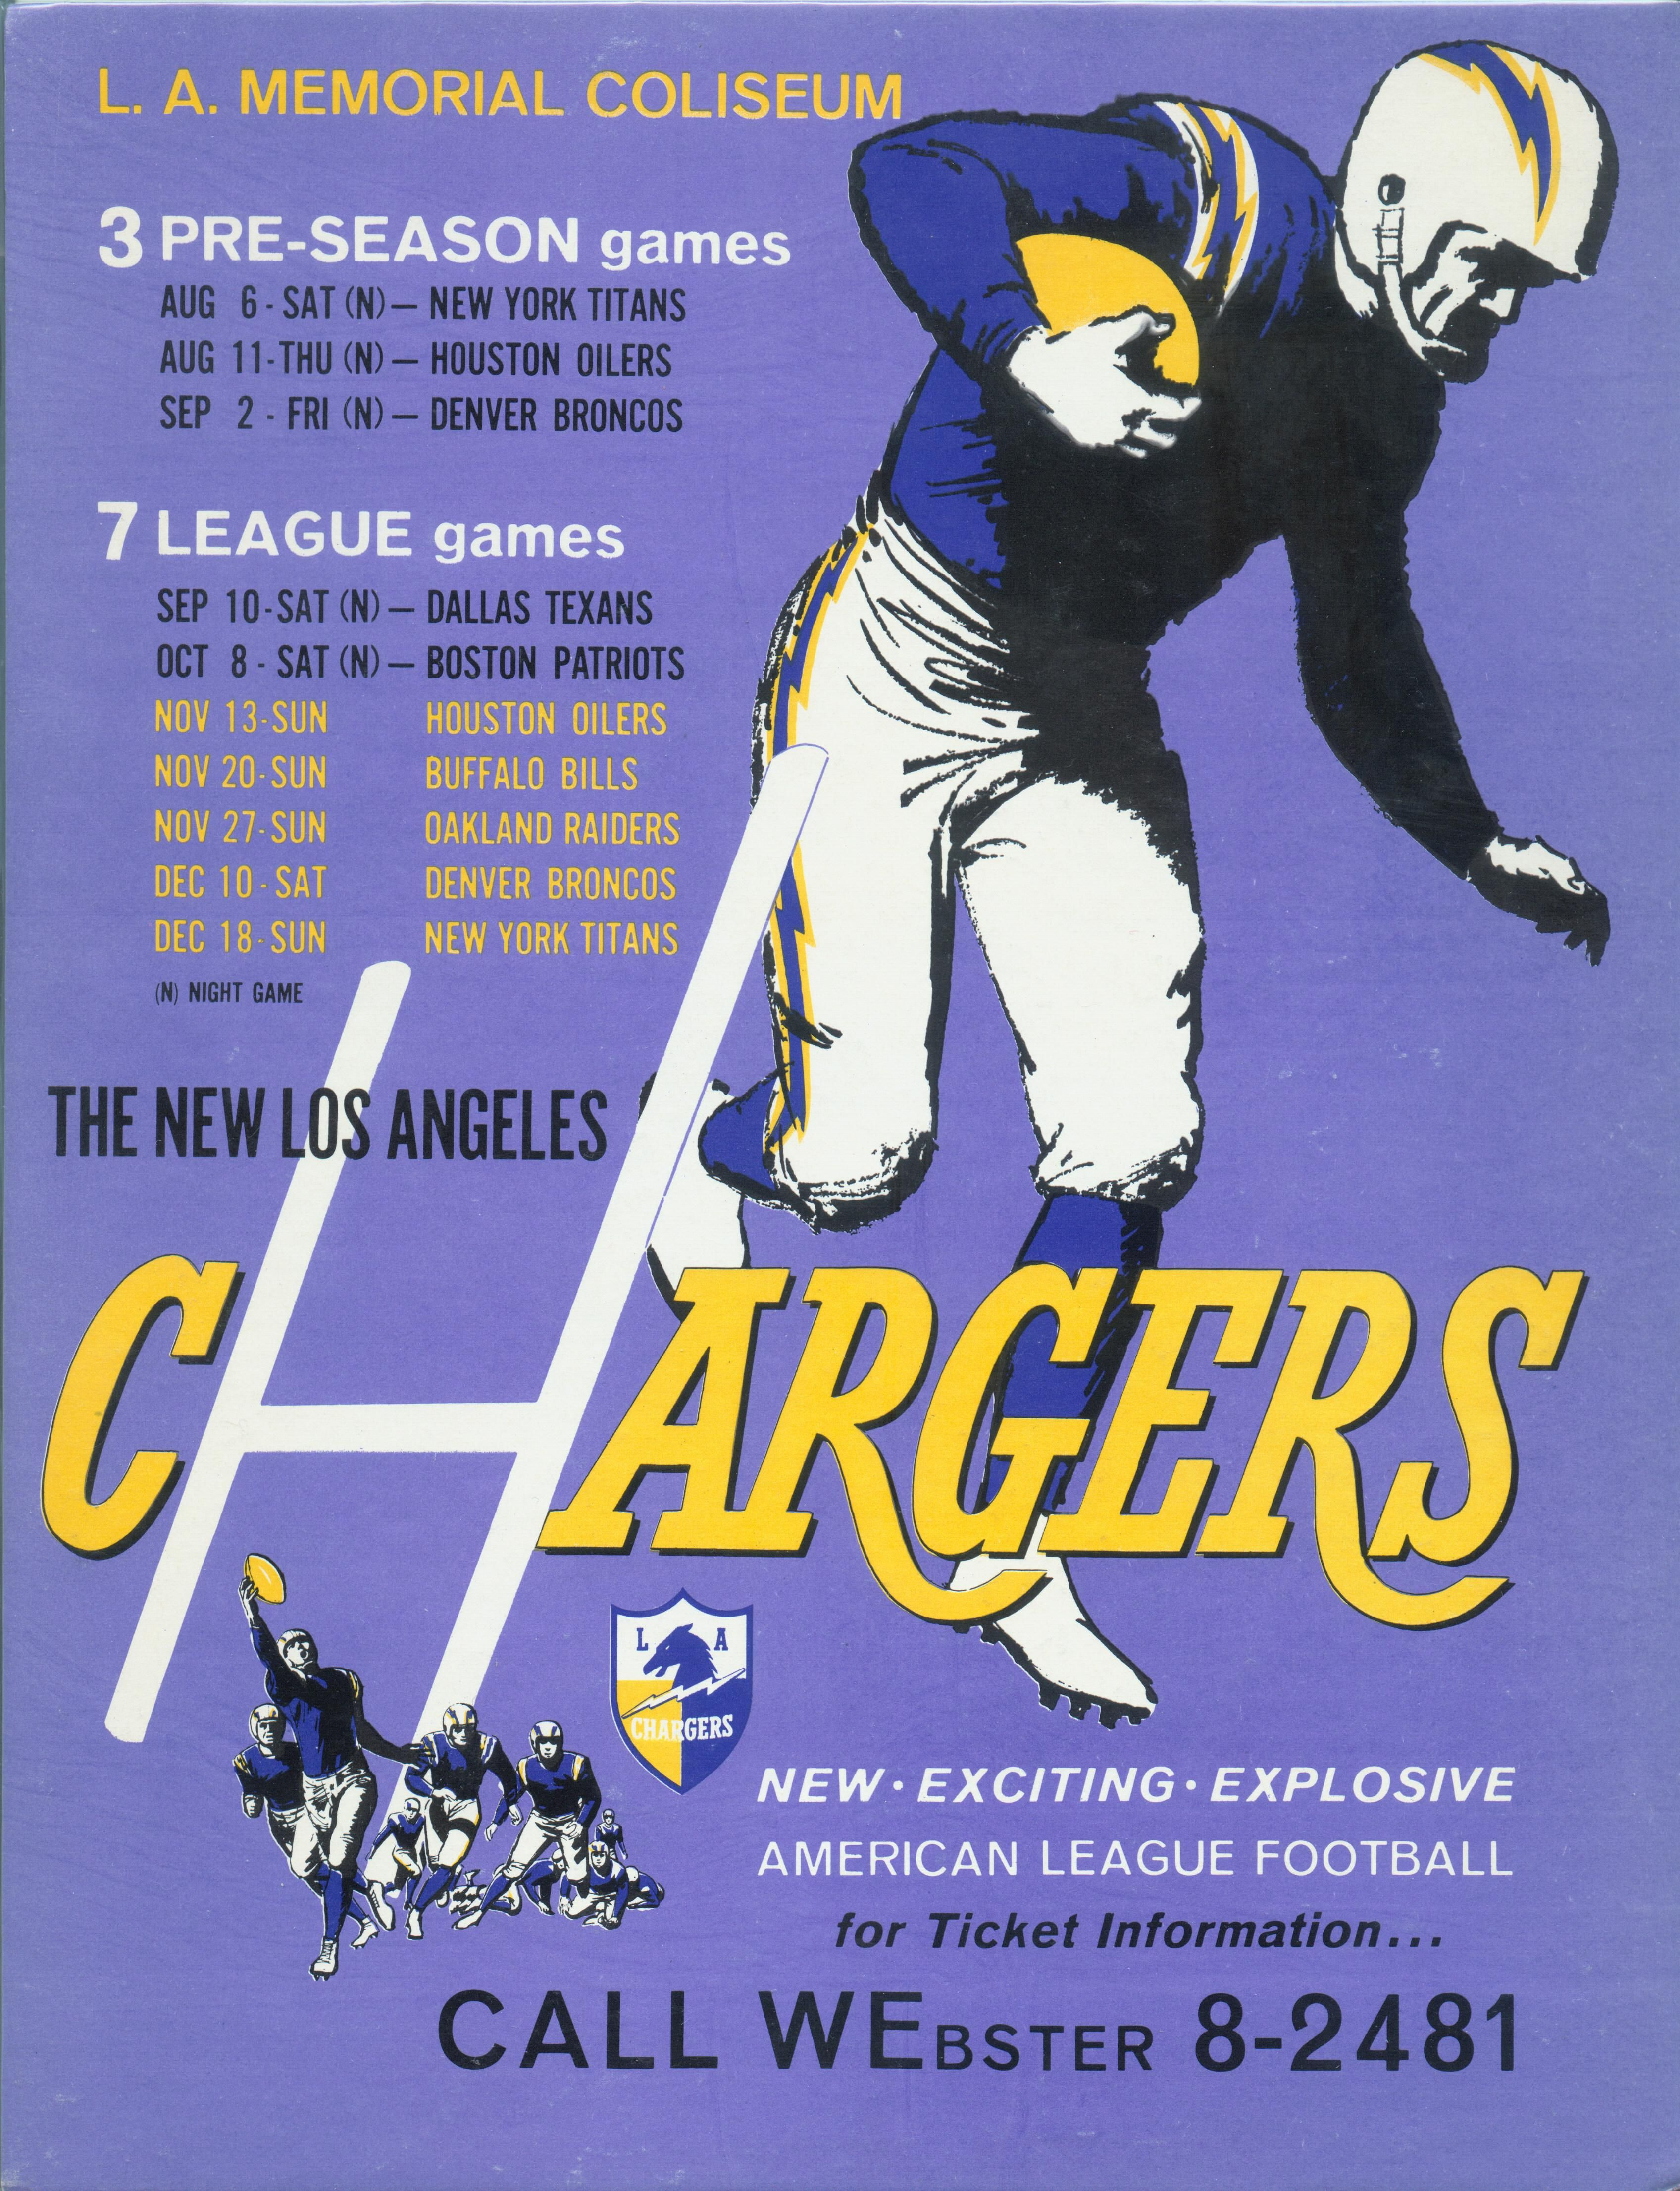 1960 Los Angeles Chargers Ticket Placard American Football League Los Angeles Chargers San Diego Chargers Football